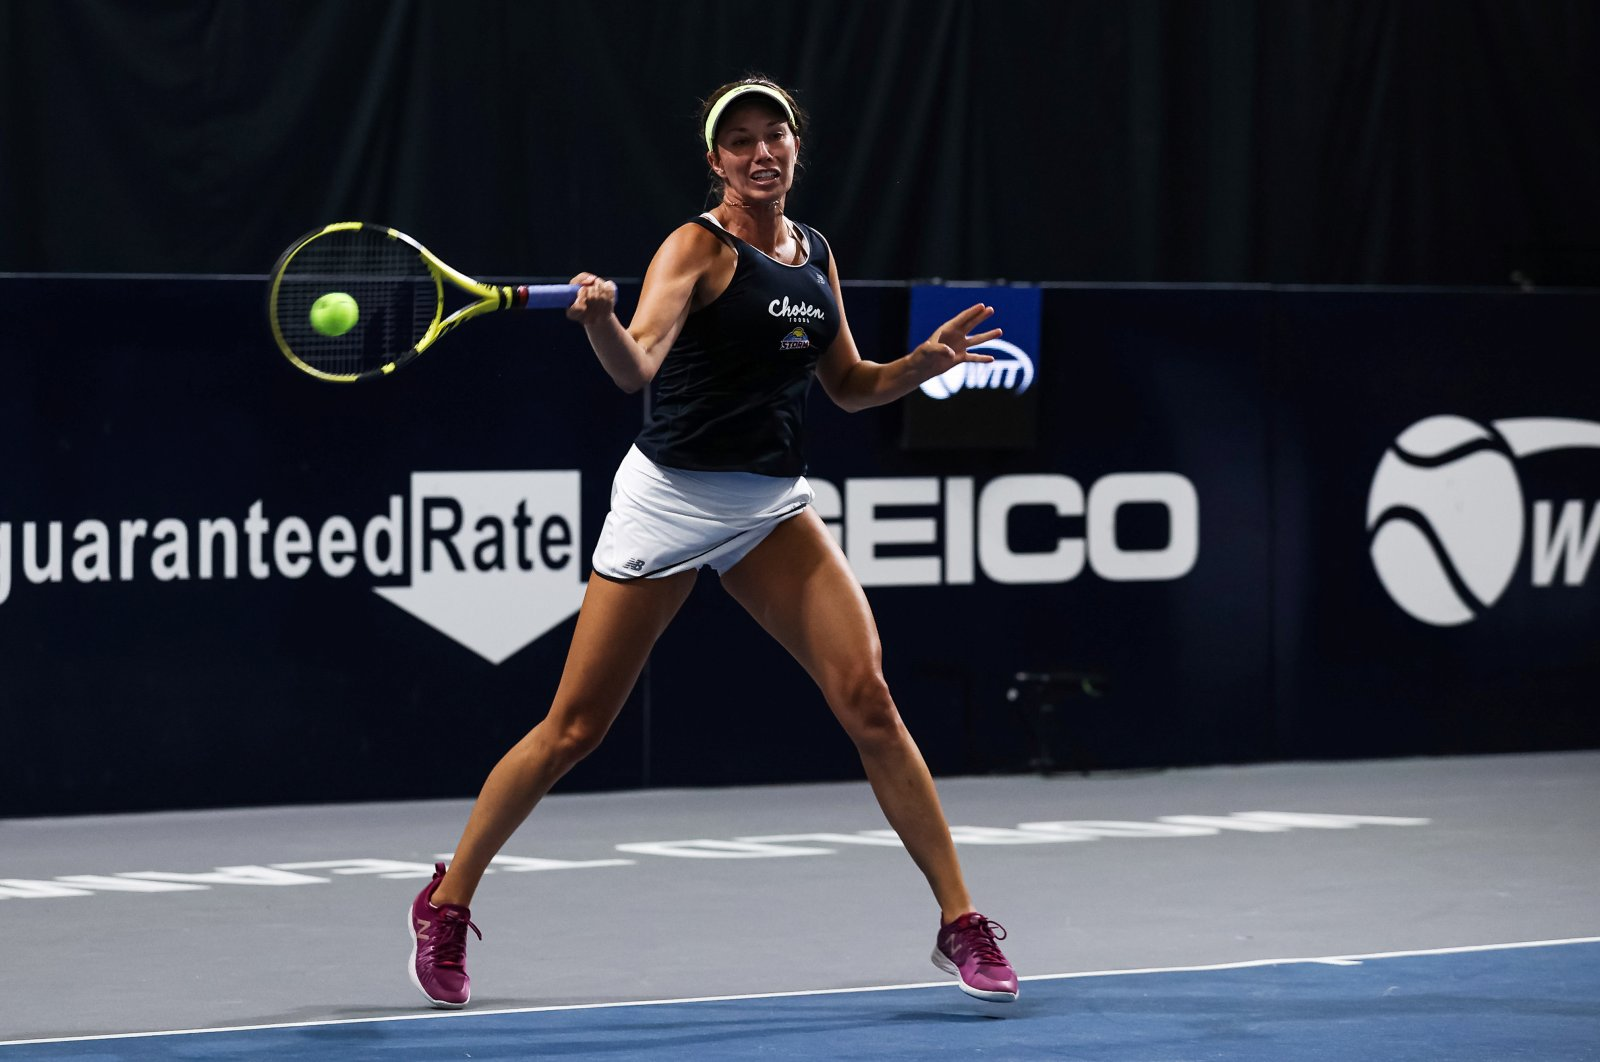 Danielle Collins in action during a World TeamTennis match in Greenbrier, West Virginia, U.S., July 16, 2020. (Reuters Photo)